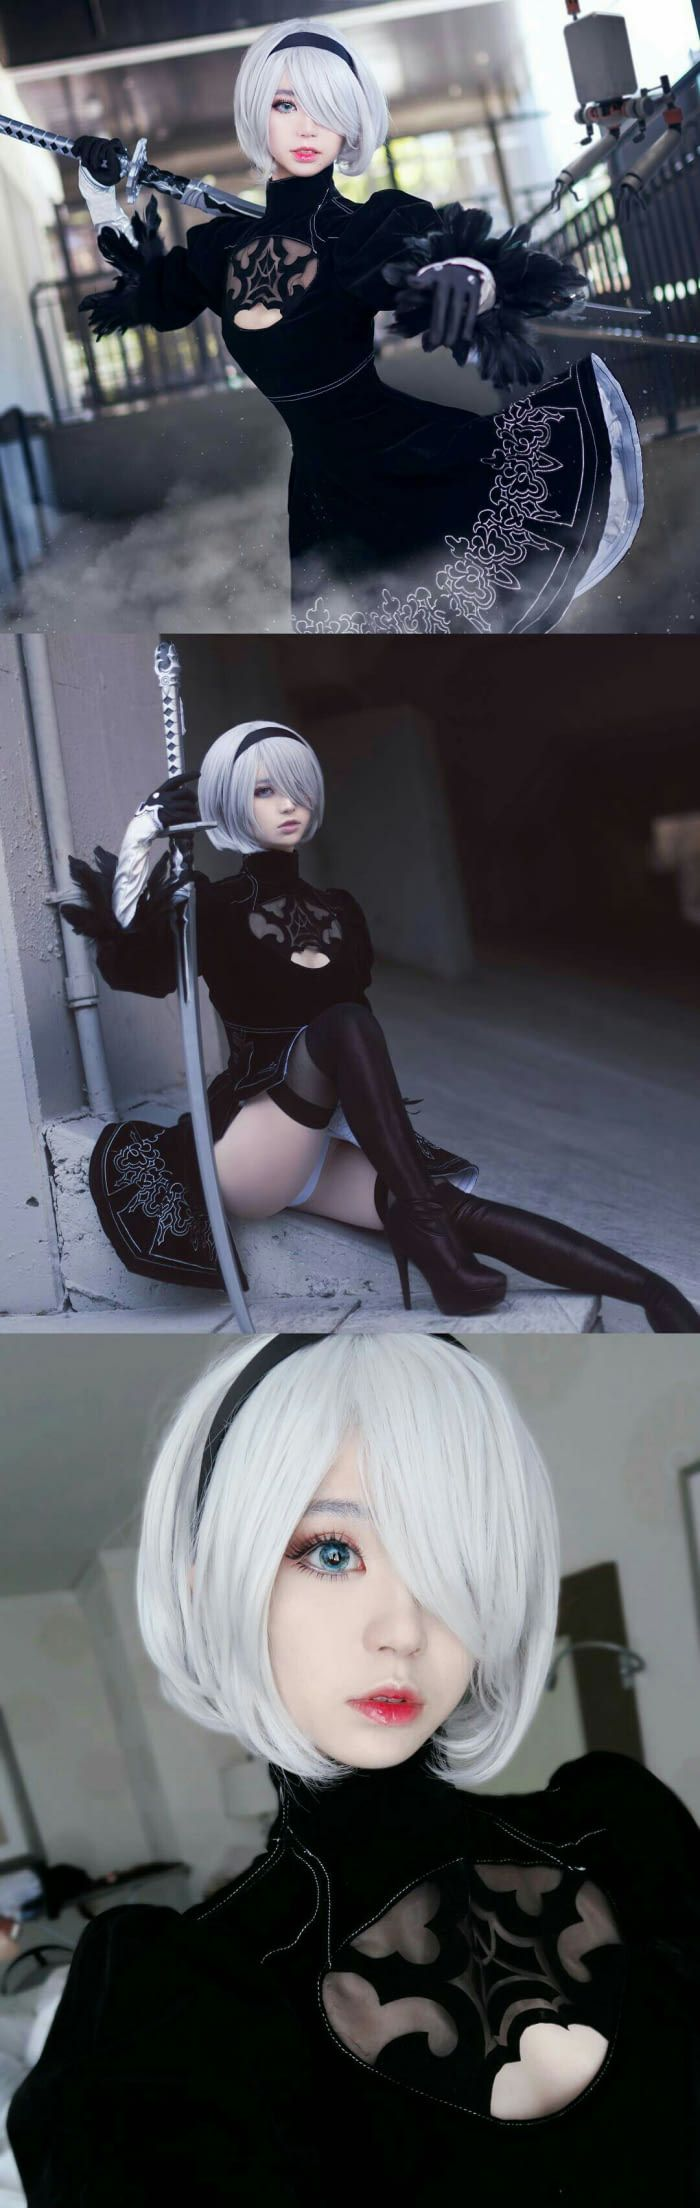 Such a really Goddamn beautiful cosplay of 2B from Nier Automata! (no trap confirmed)